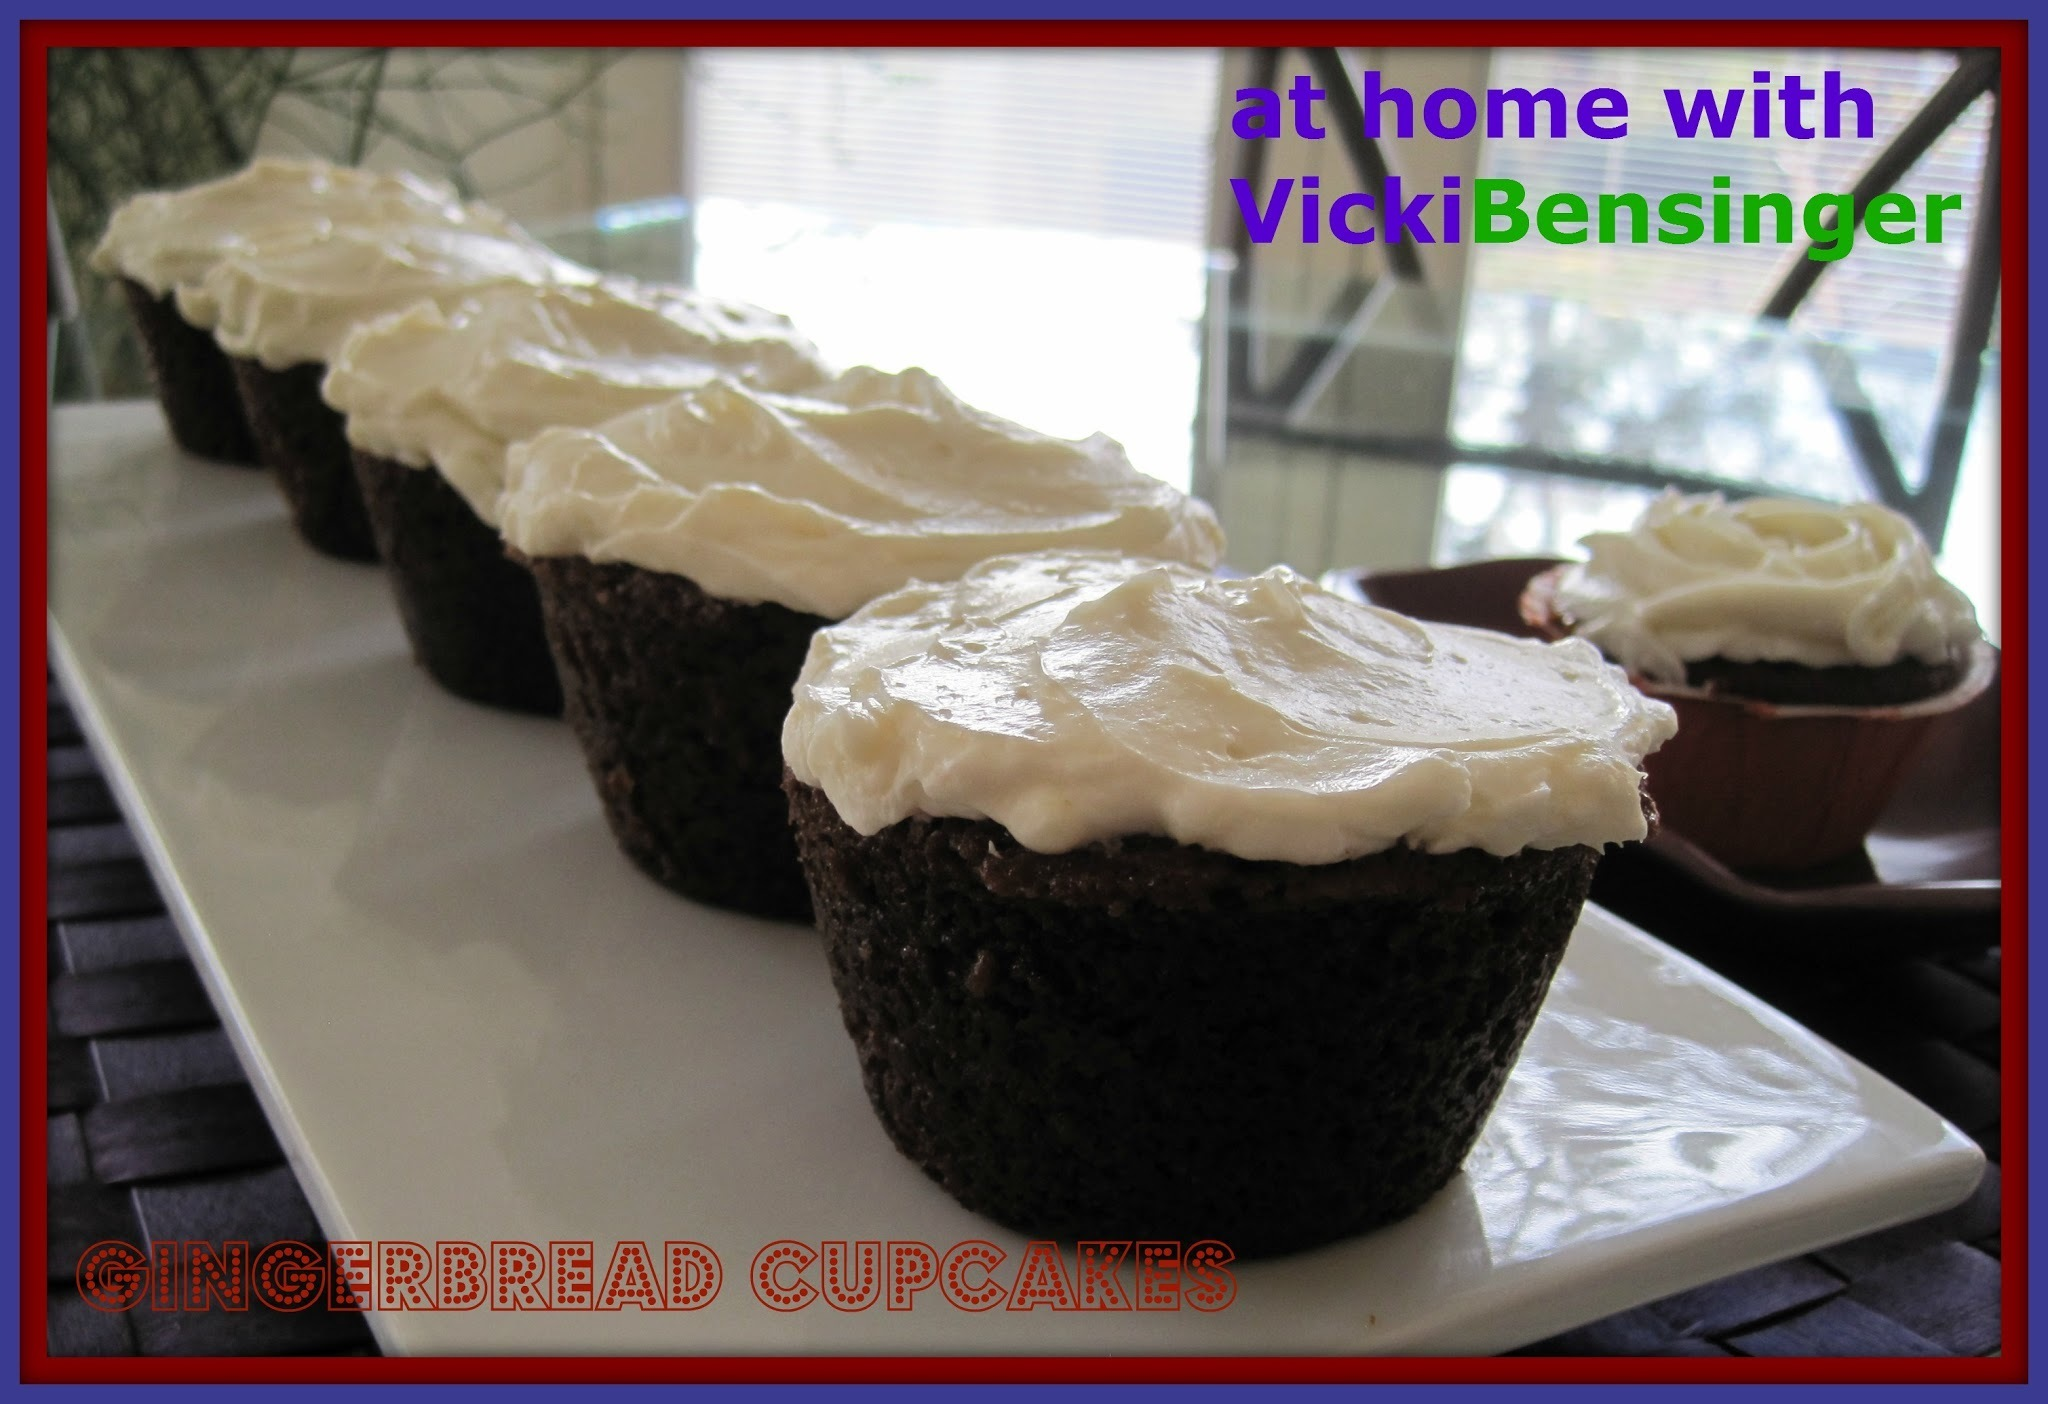 Stuffed Gingerbread Cupcakes with Pumpkin Pudding and Cream Cheese Frosting